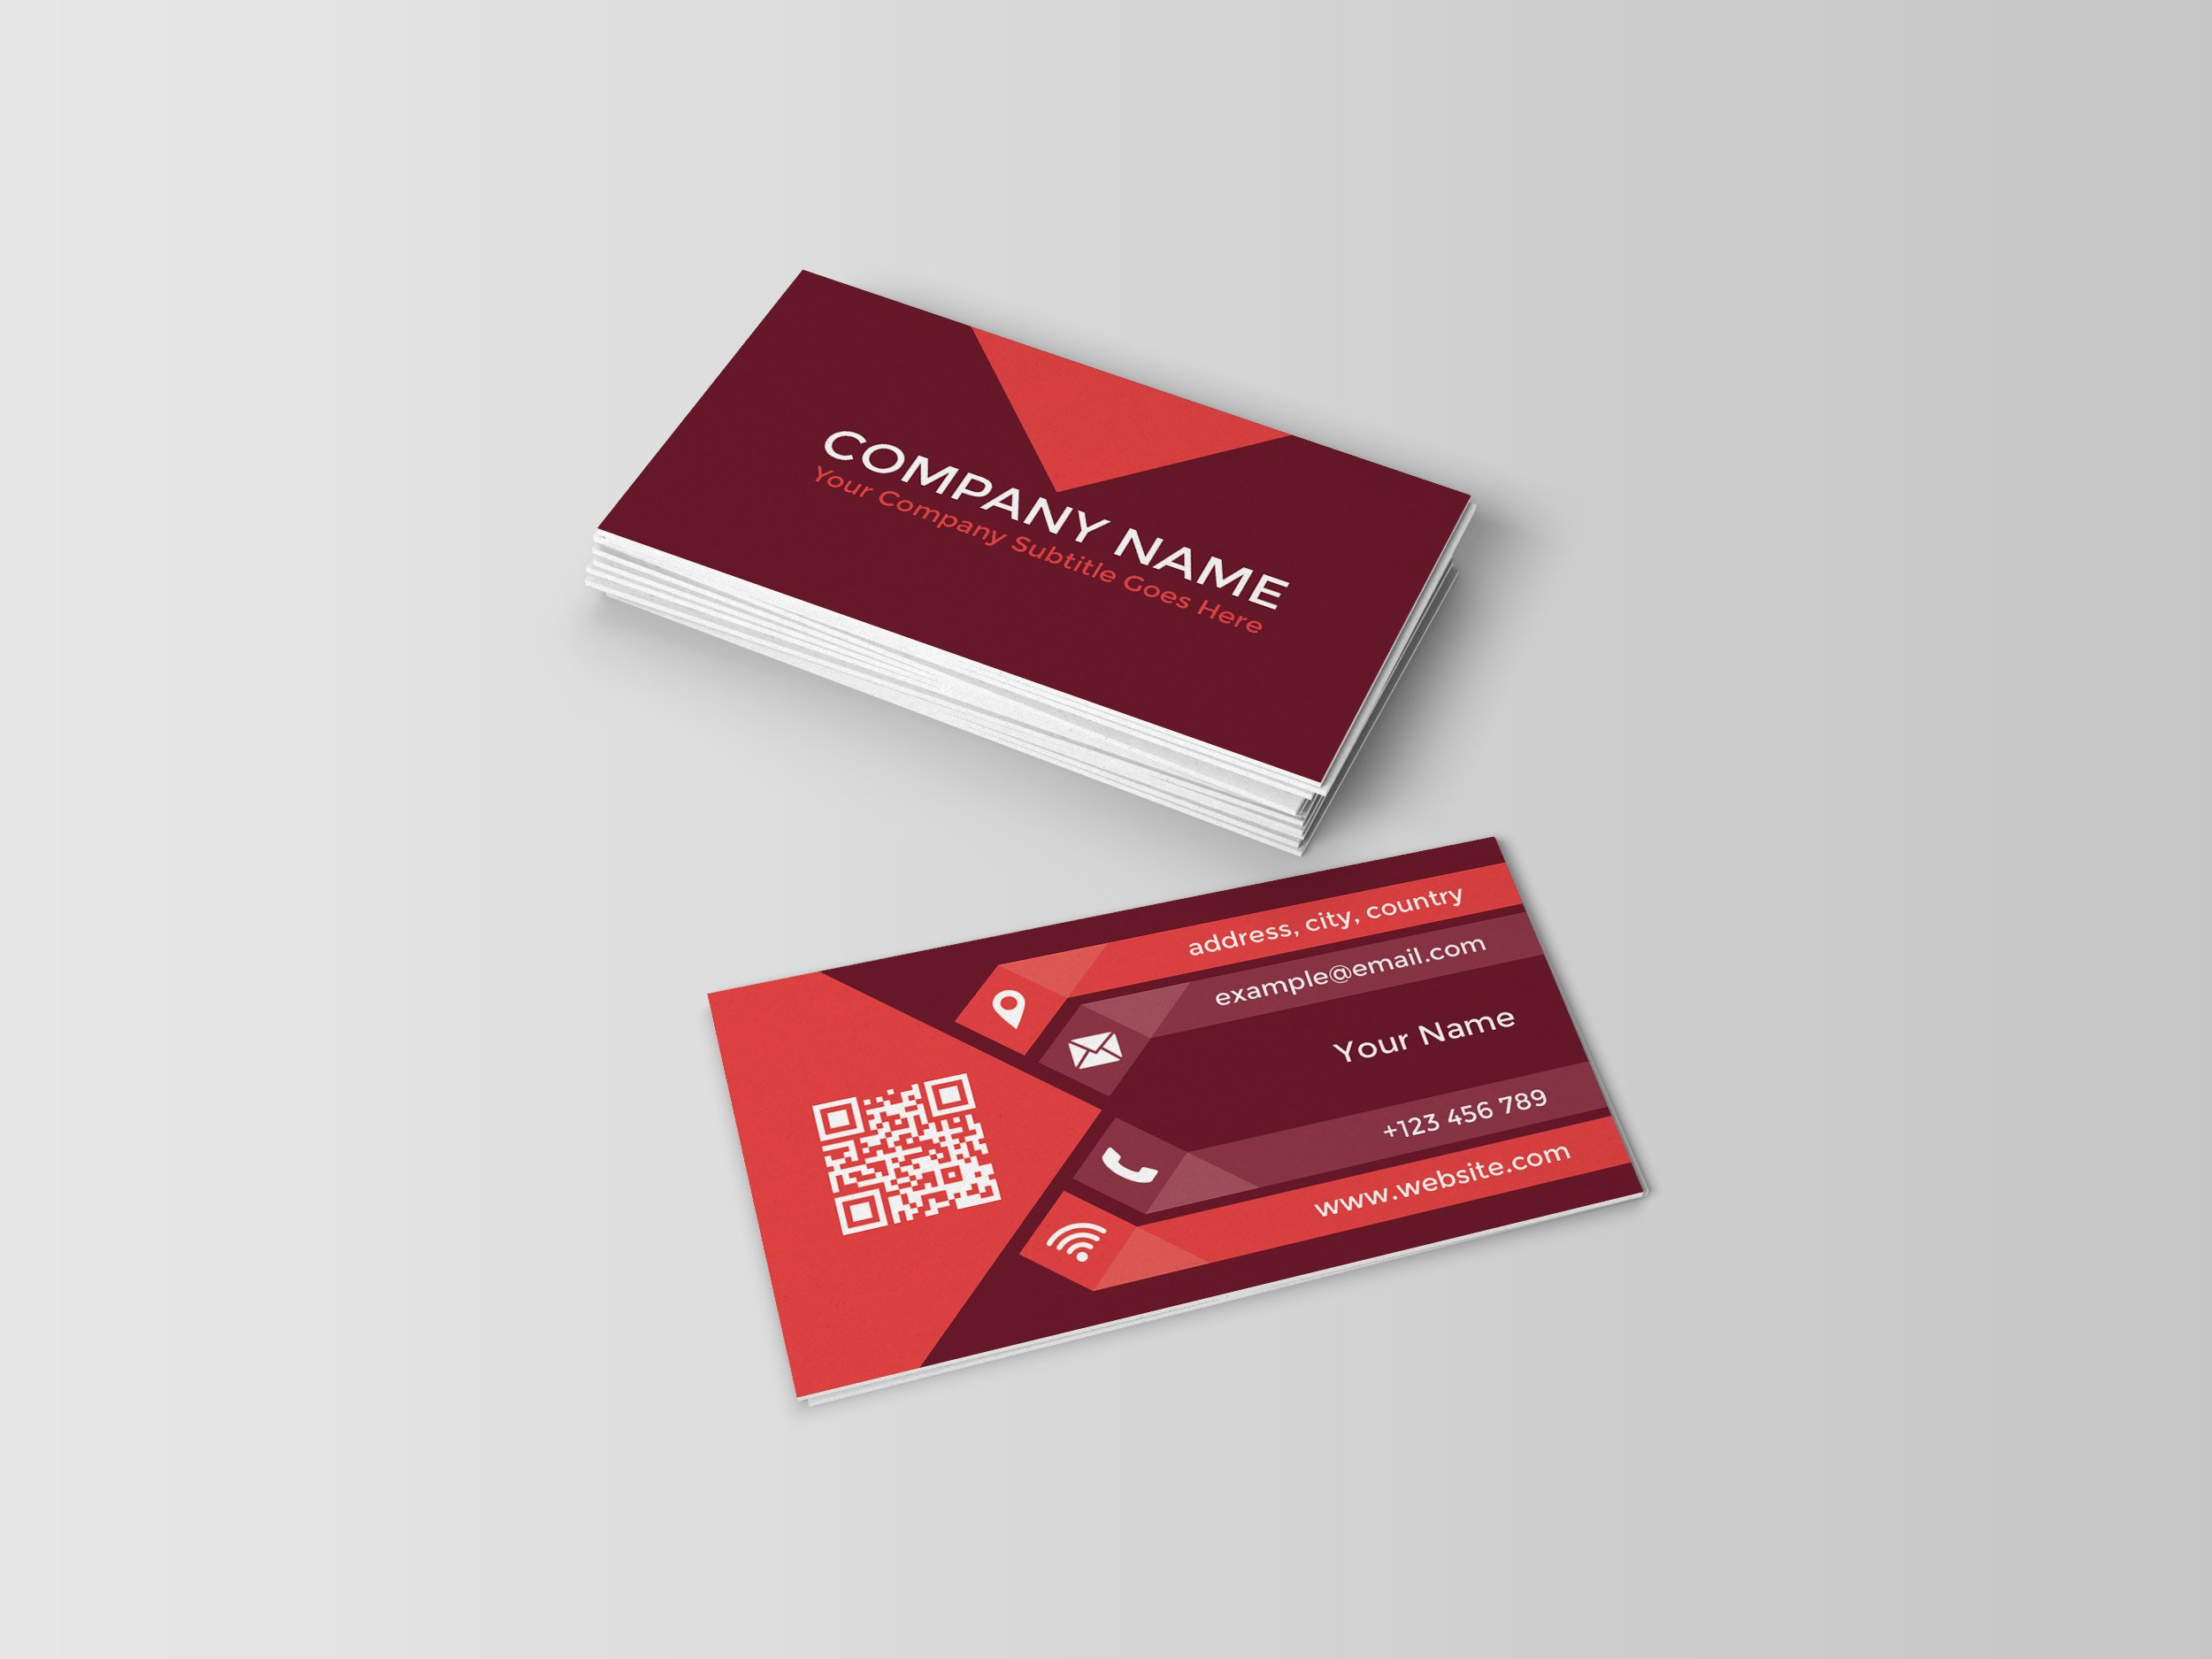 Multipurpose qr code business card business card templates multipurpose qr code business card business card templates creative market colourmoves